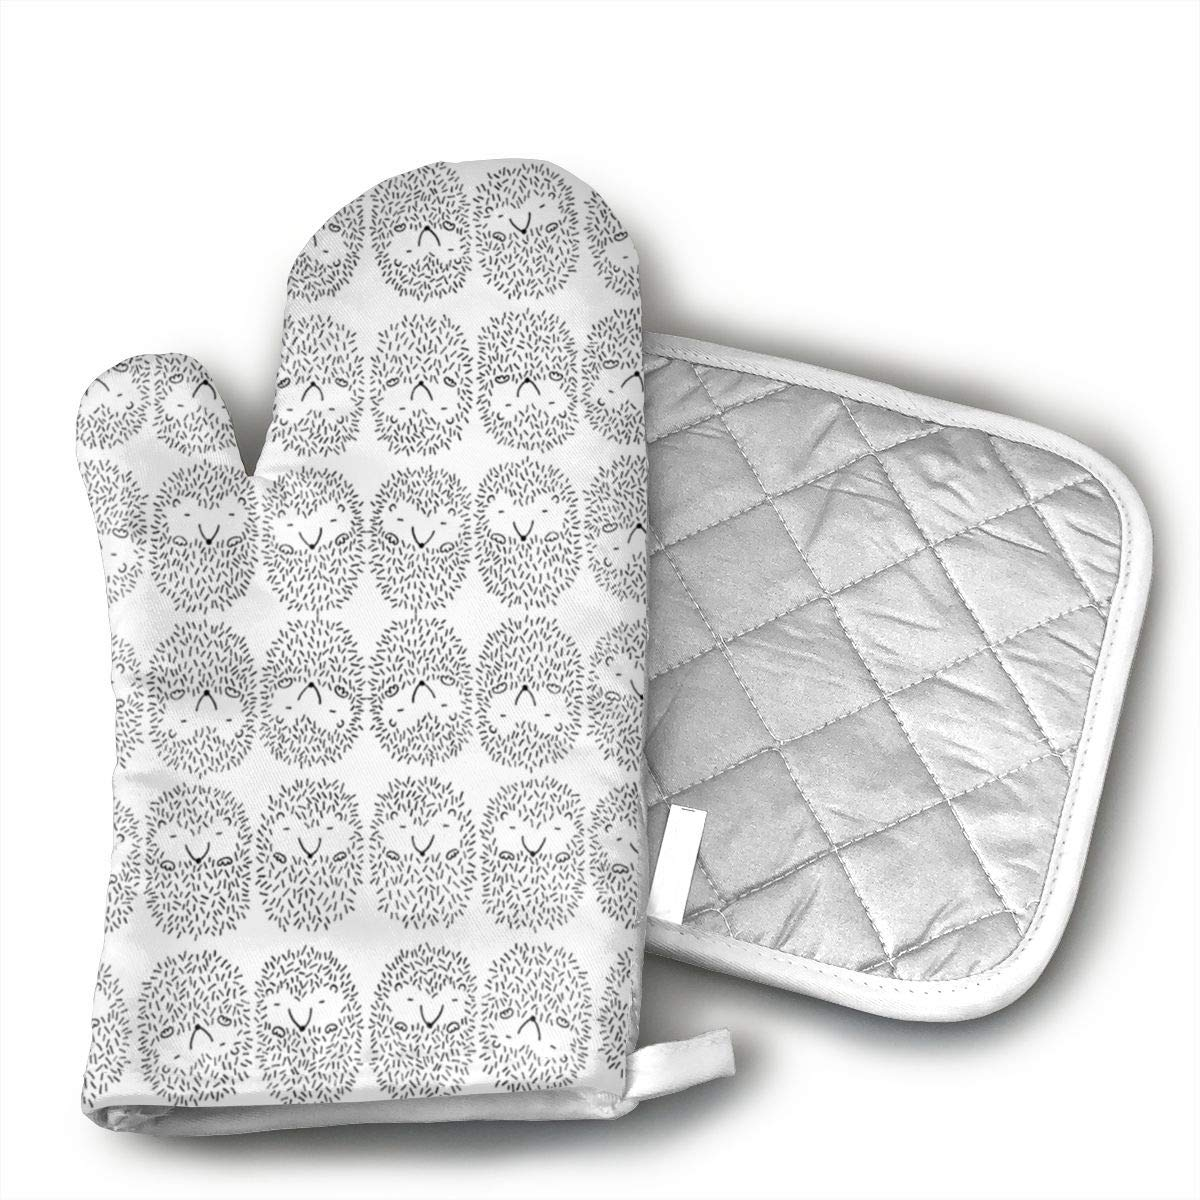 Wiqo9 Sleepy Hedgehogs Oven Mitts and Pot Holders Kitchen Mitten Cooking Gloves,Cooking, Baking, BBQ.